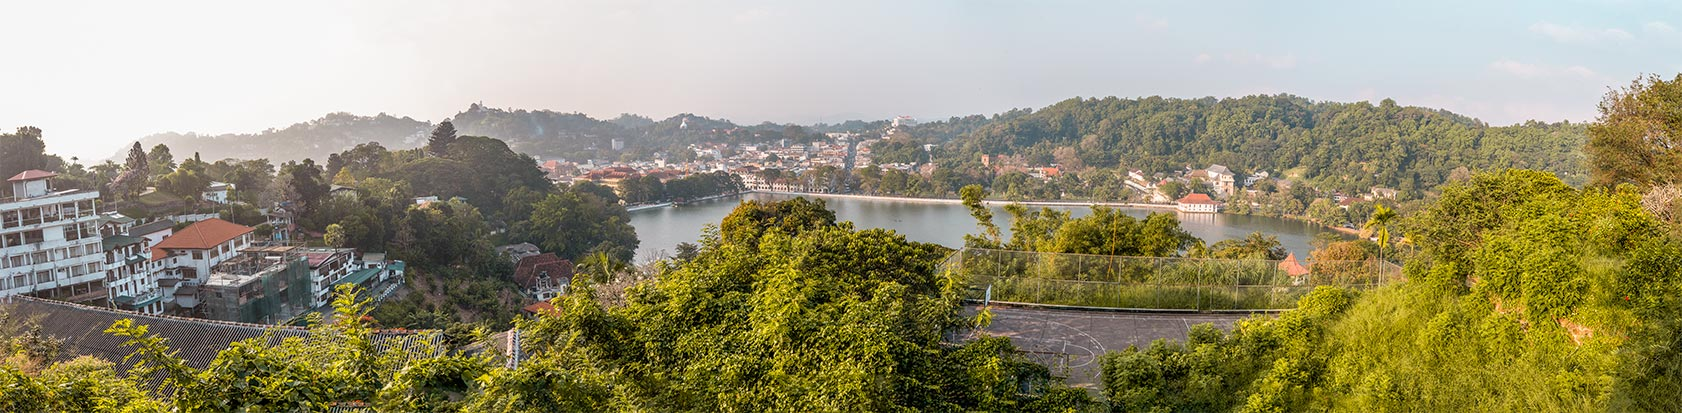 Panorama von Kandy in Sri Lanka